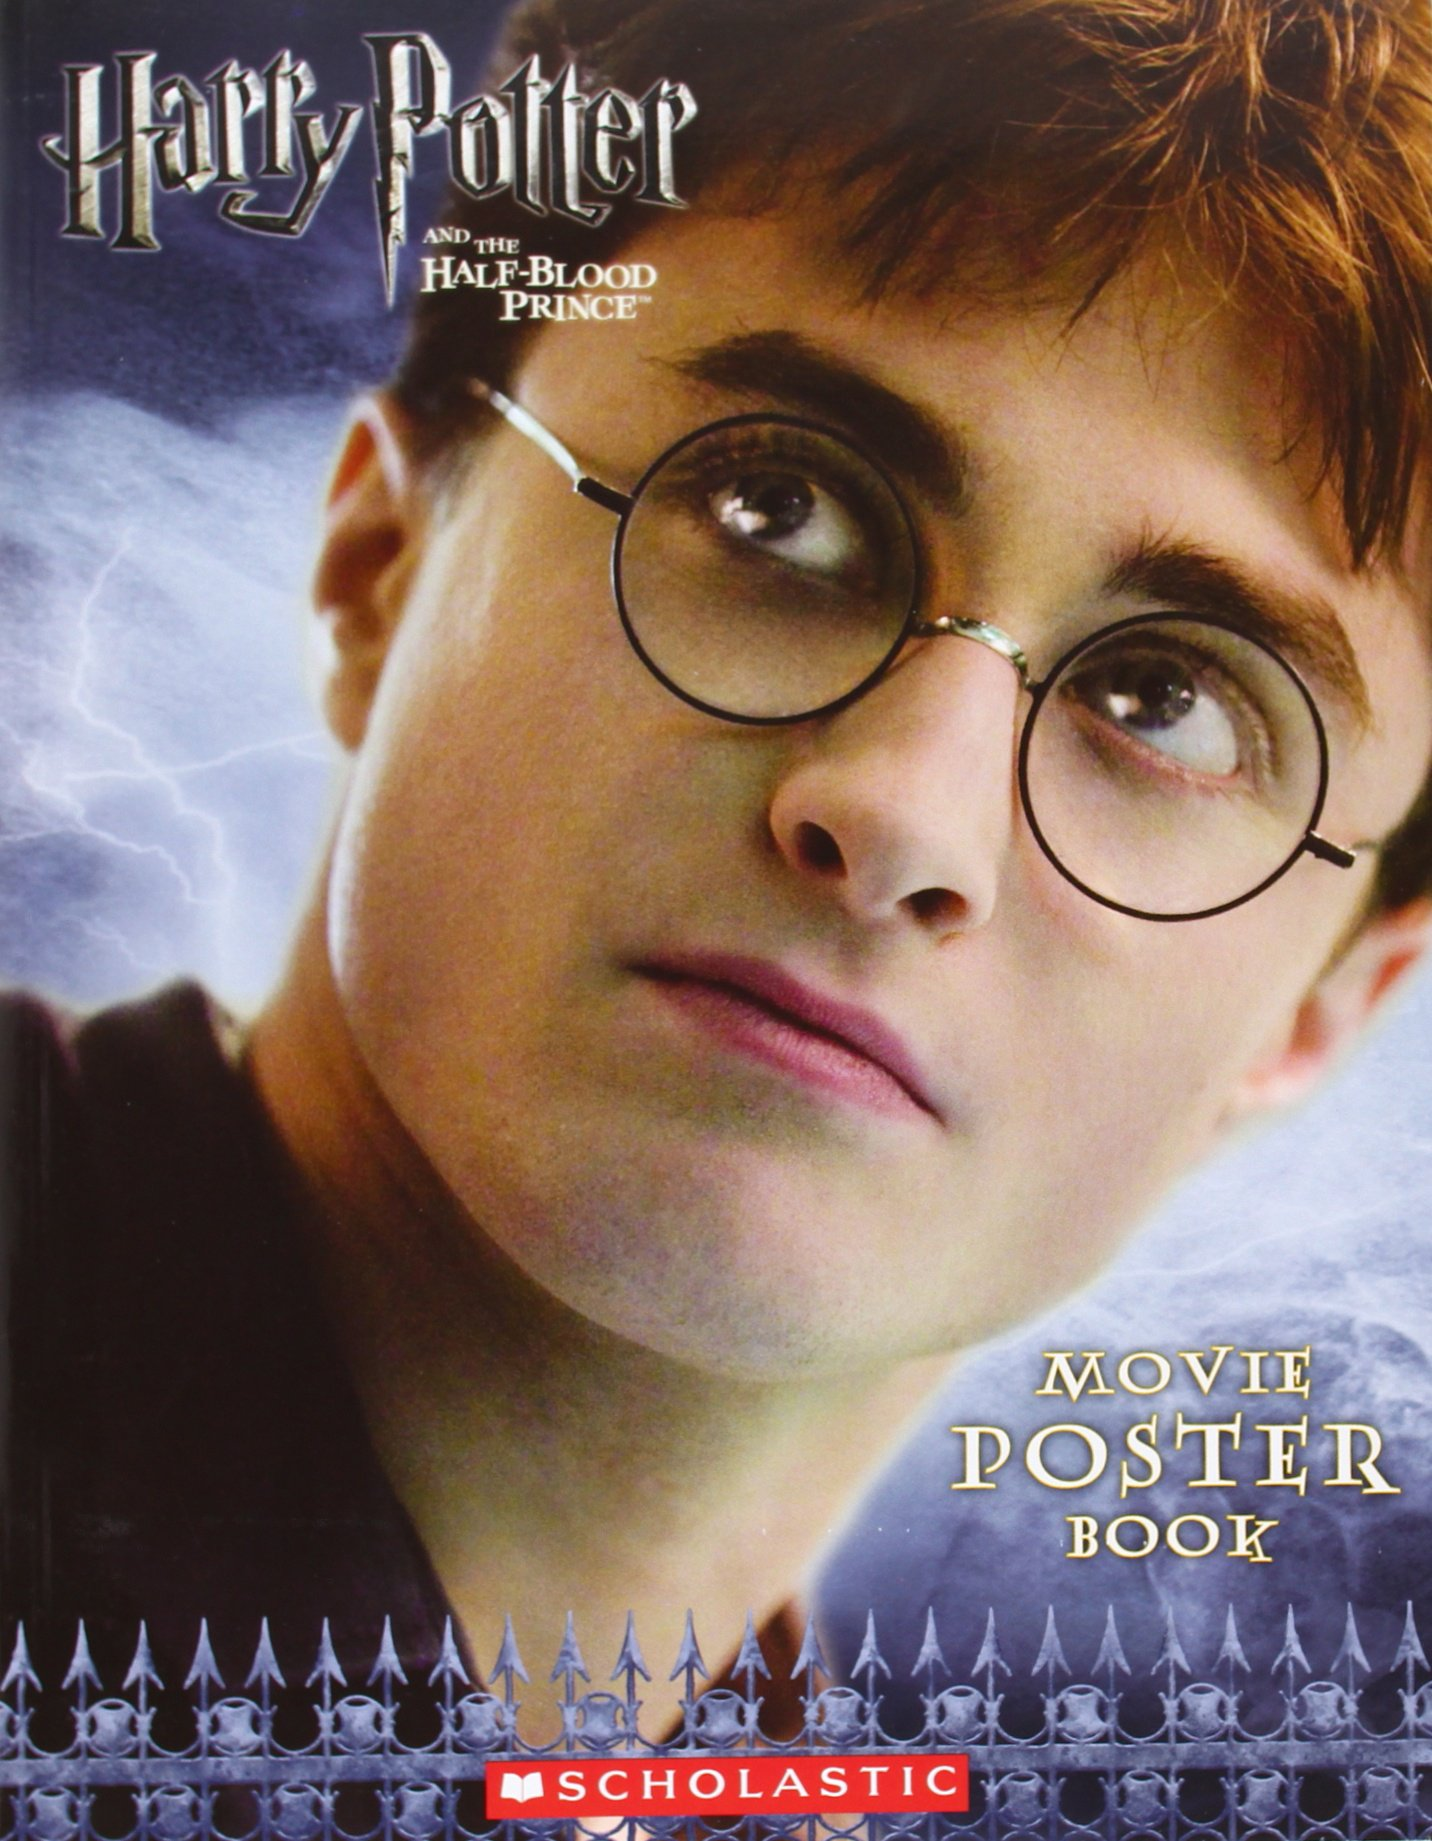 Harry Potter and the Half-Blood Prince Movie Poster Book ...